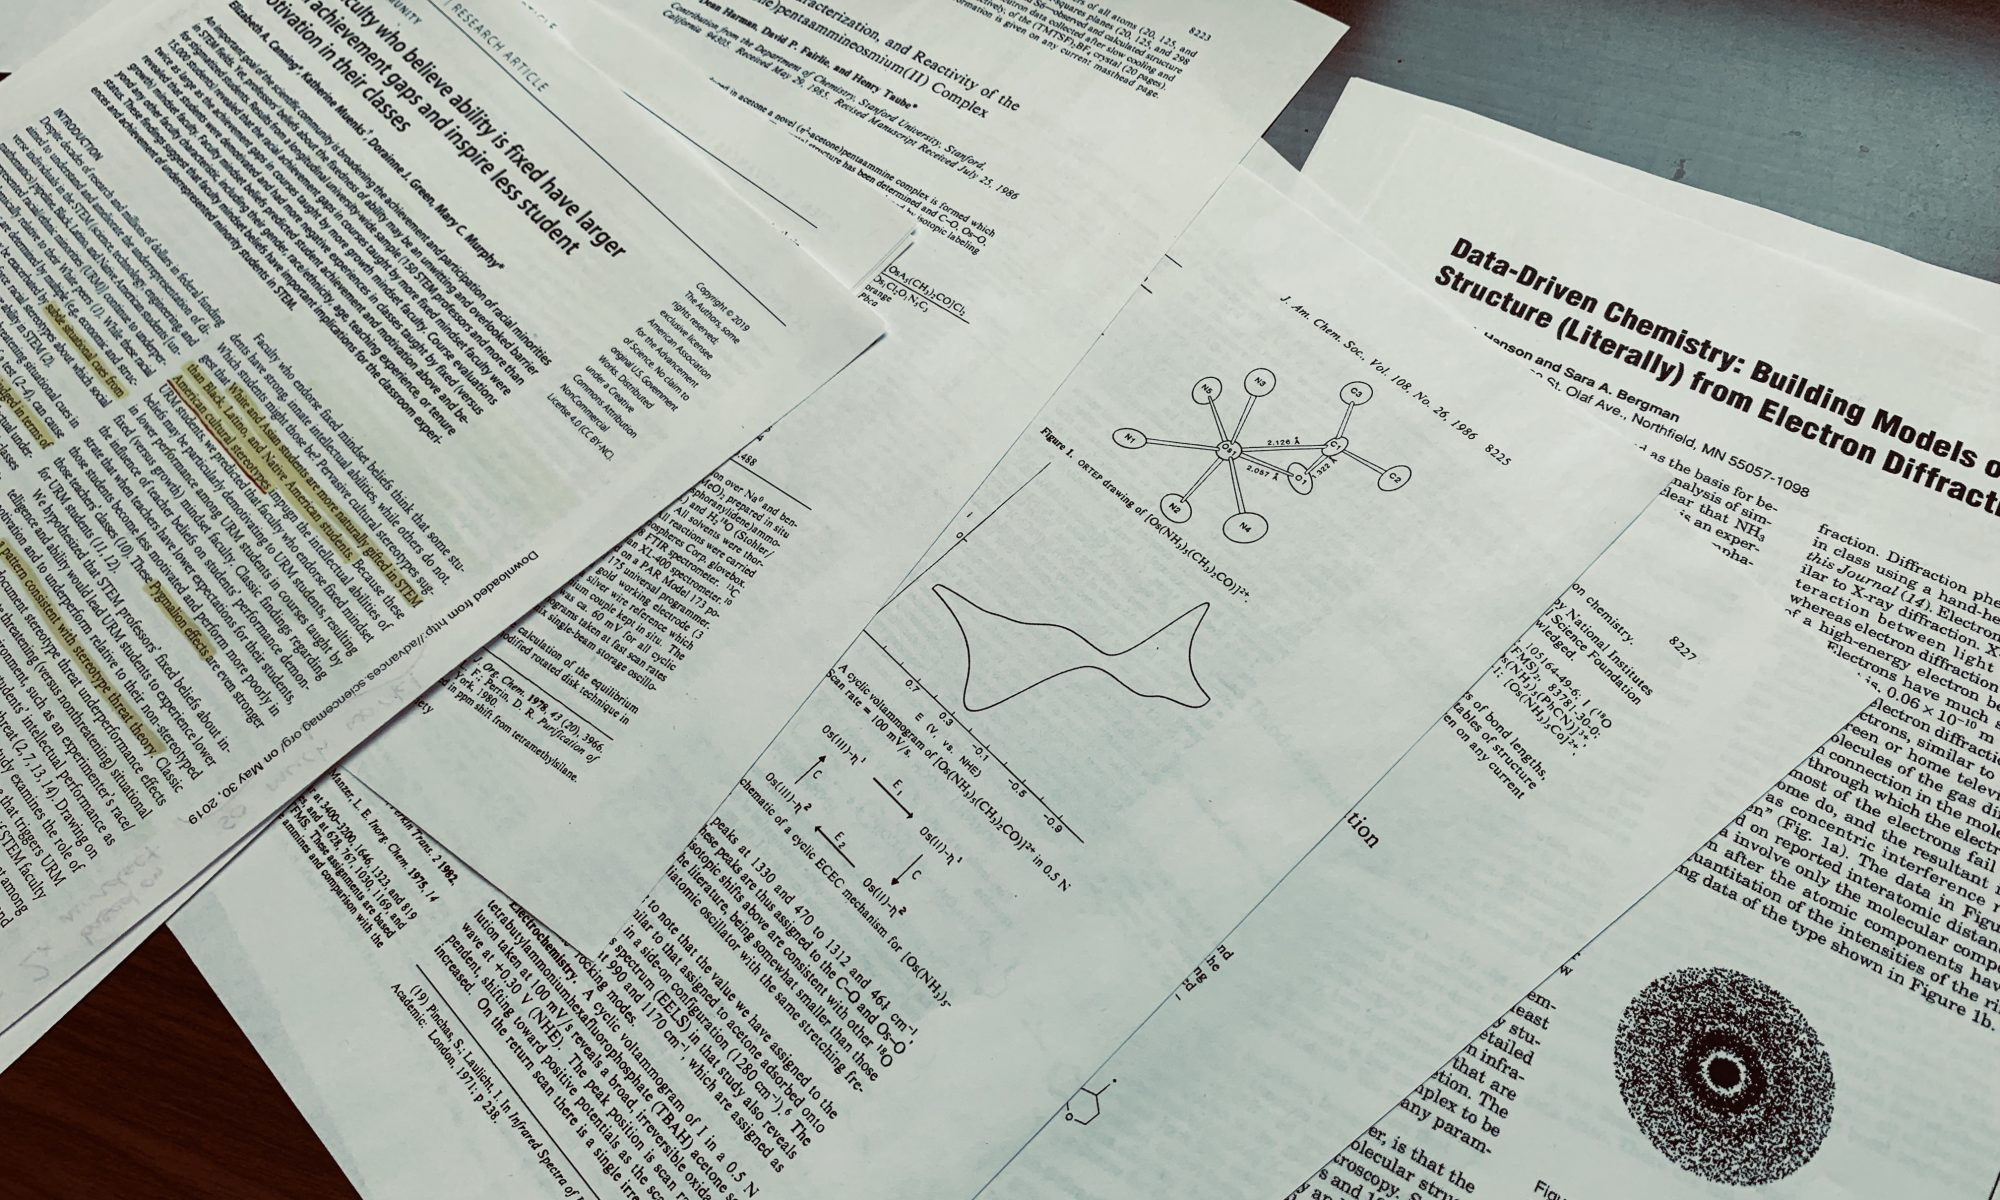 Scientific papers scattered about a table.